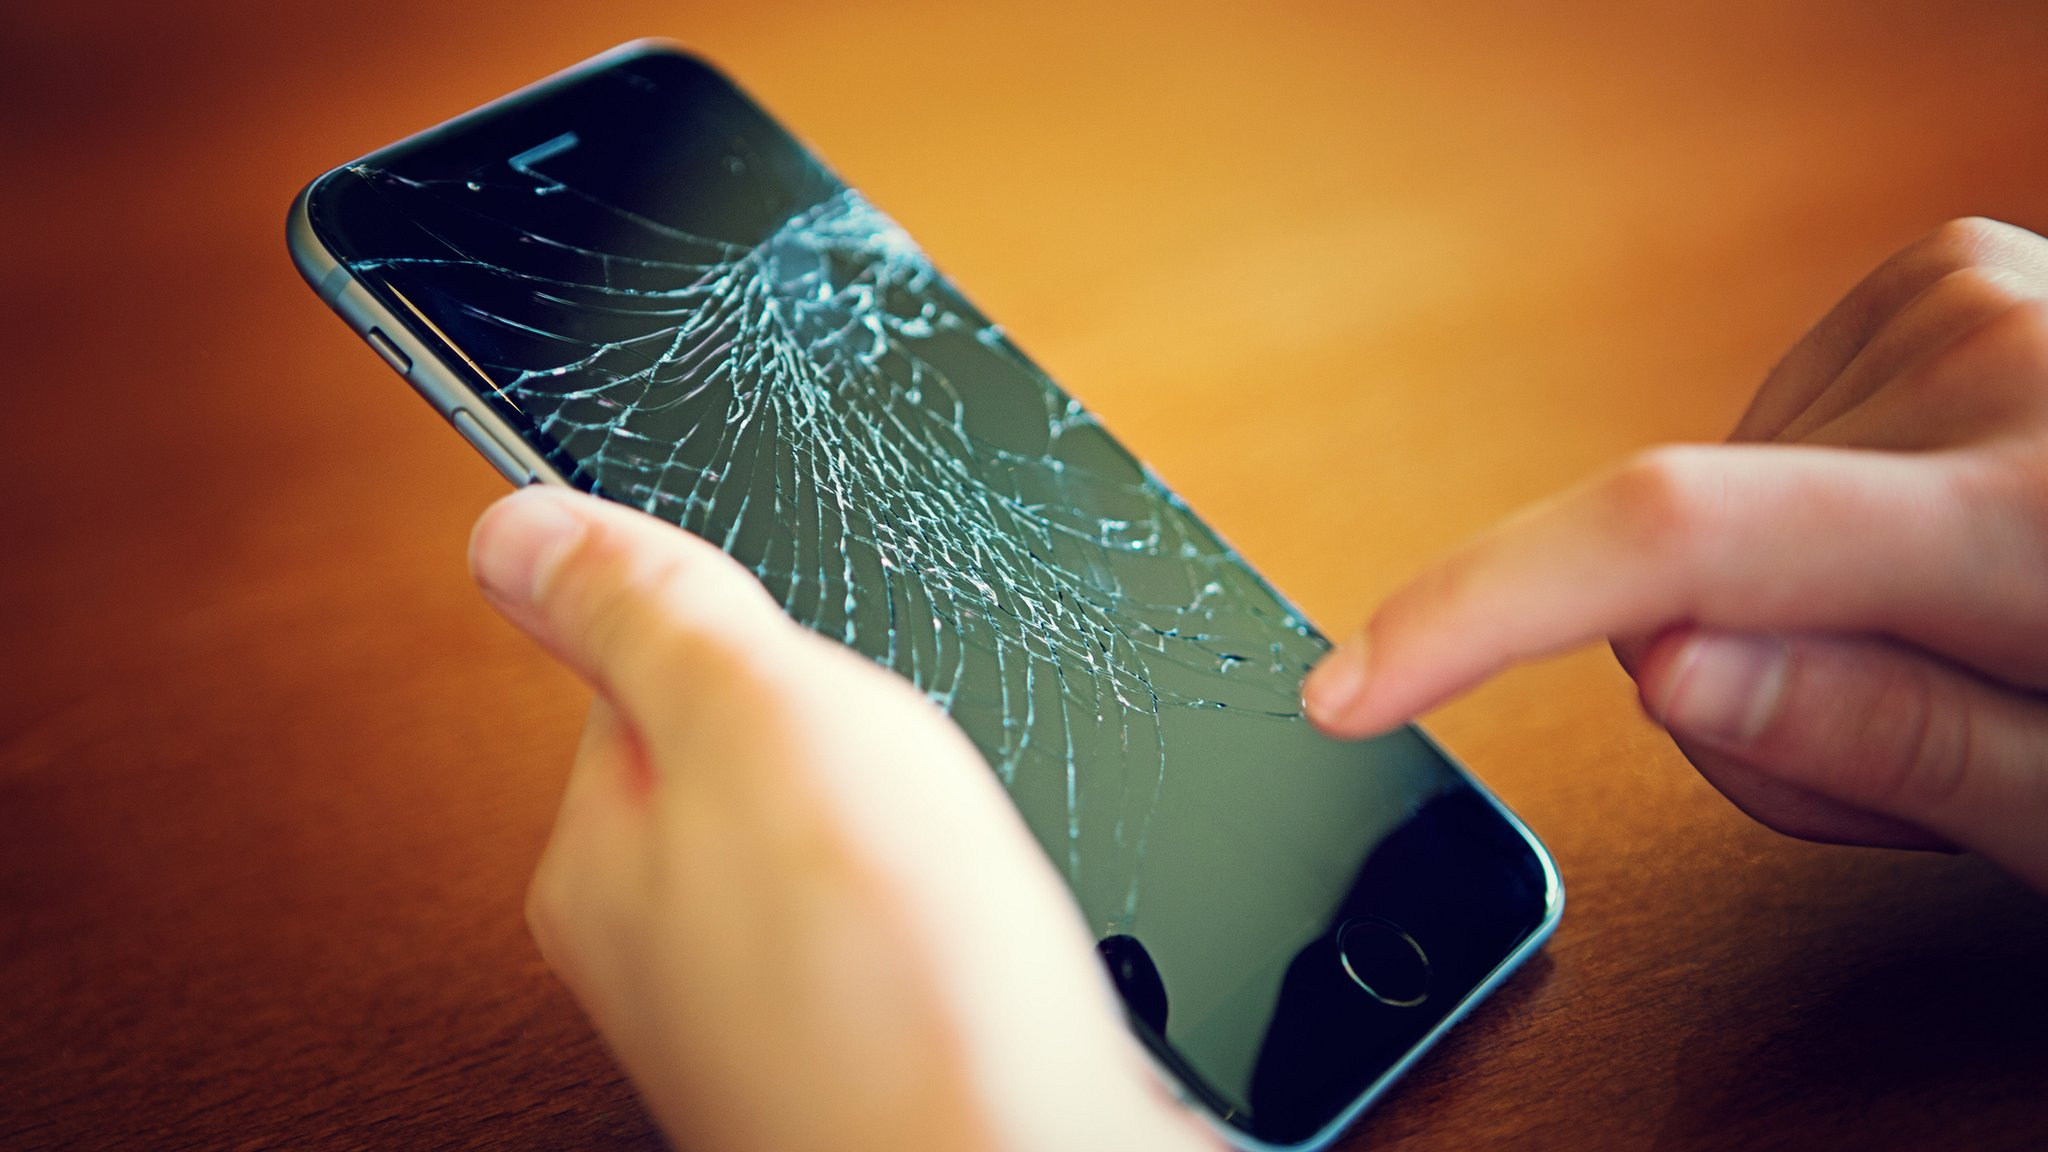 Will we ever get self-healing smartphones?